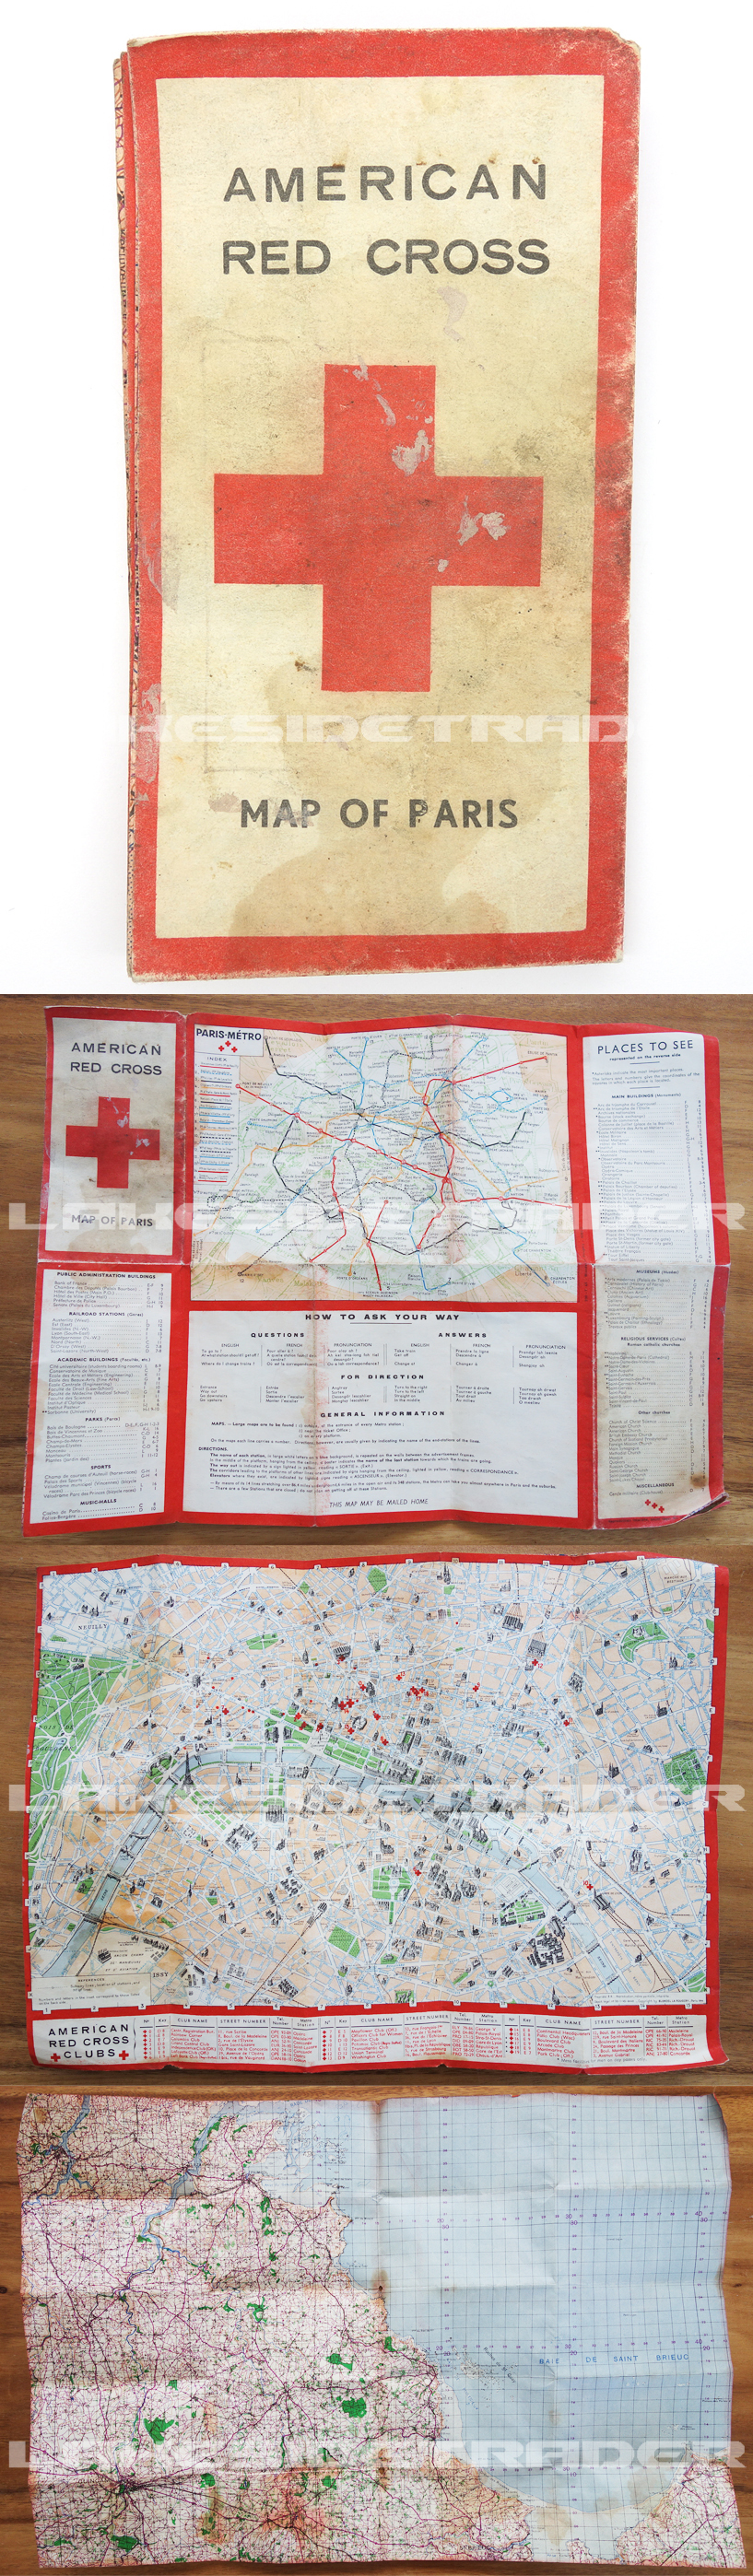 American Red Cross Map of Paris